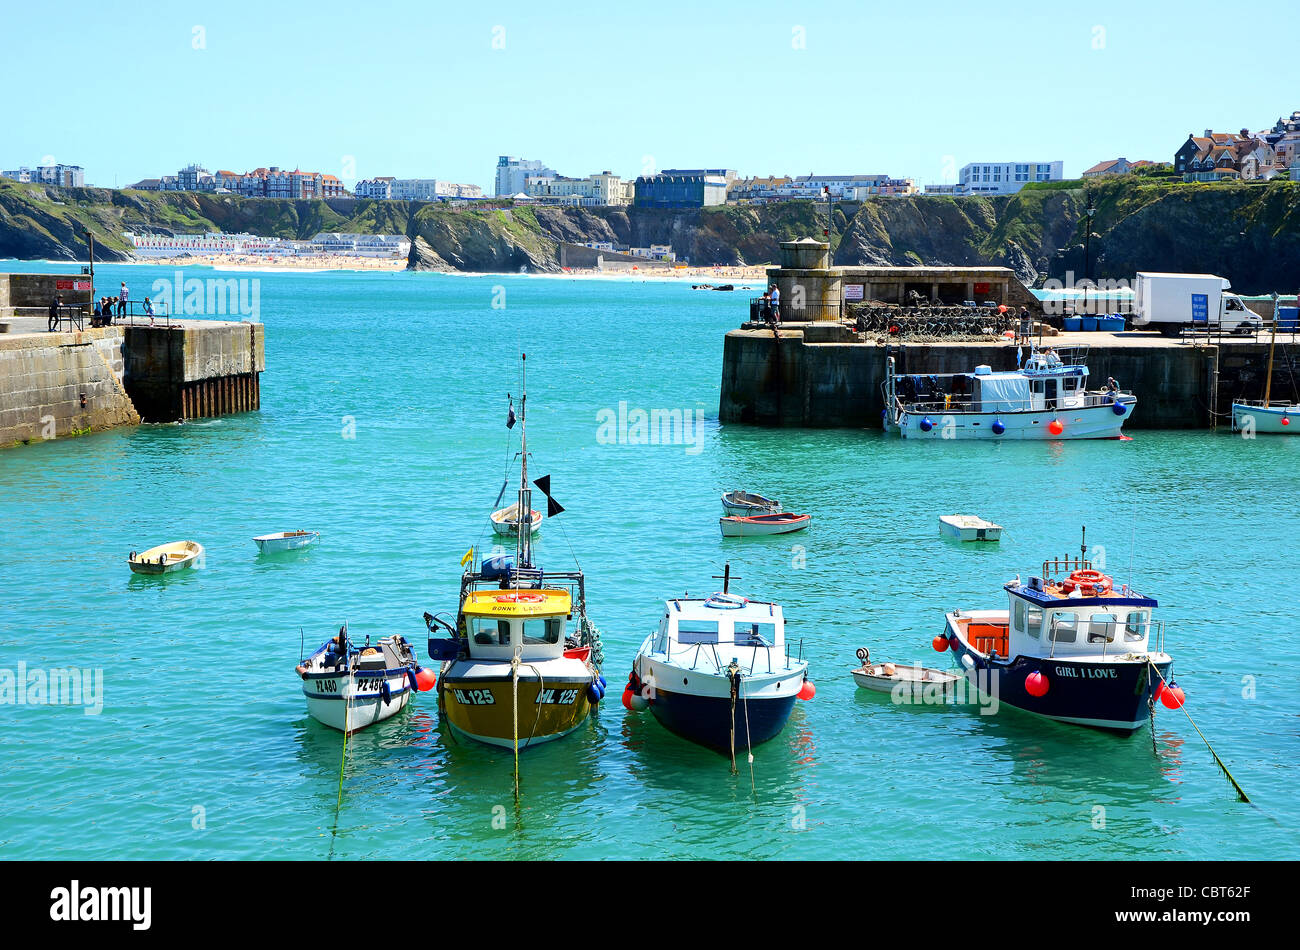 Fishing boats in the ahrbour at Newquay, Cornwall, UK - Stock Image